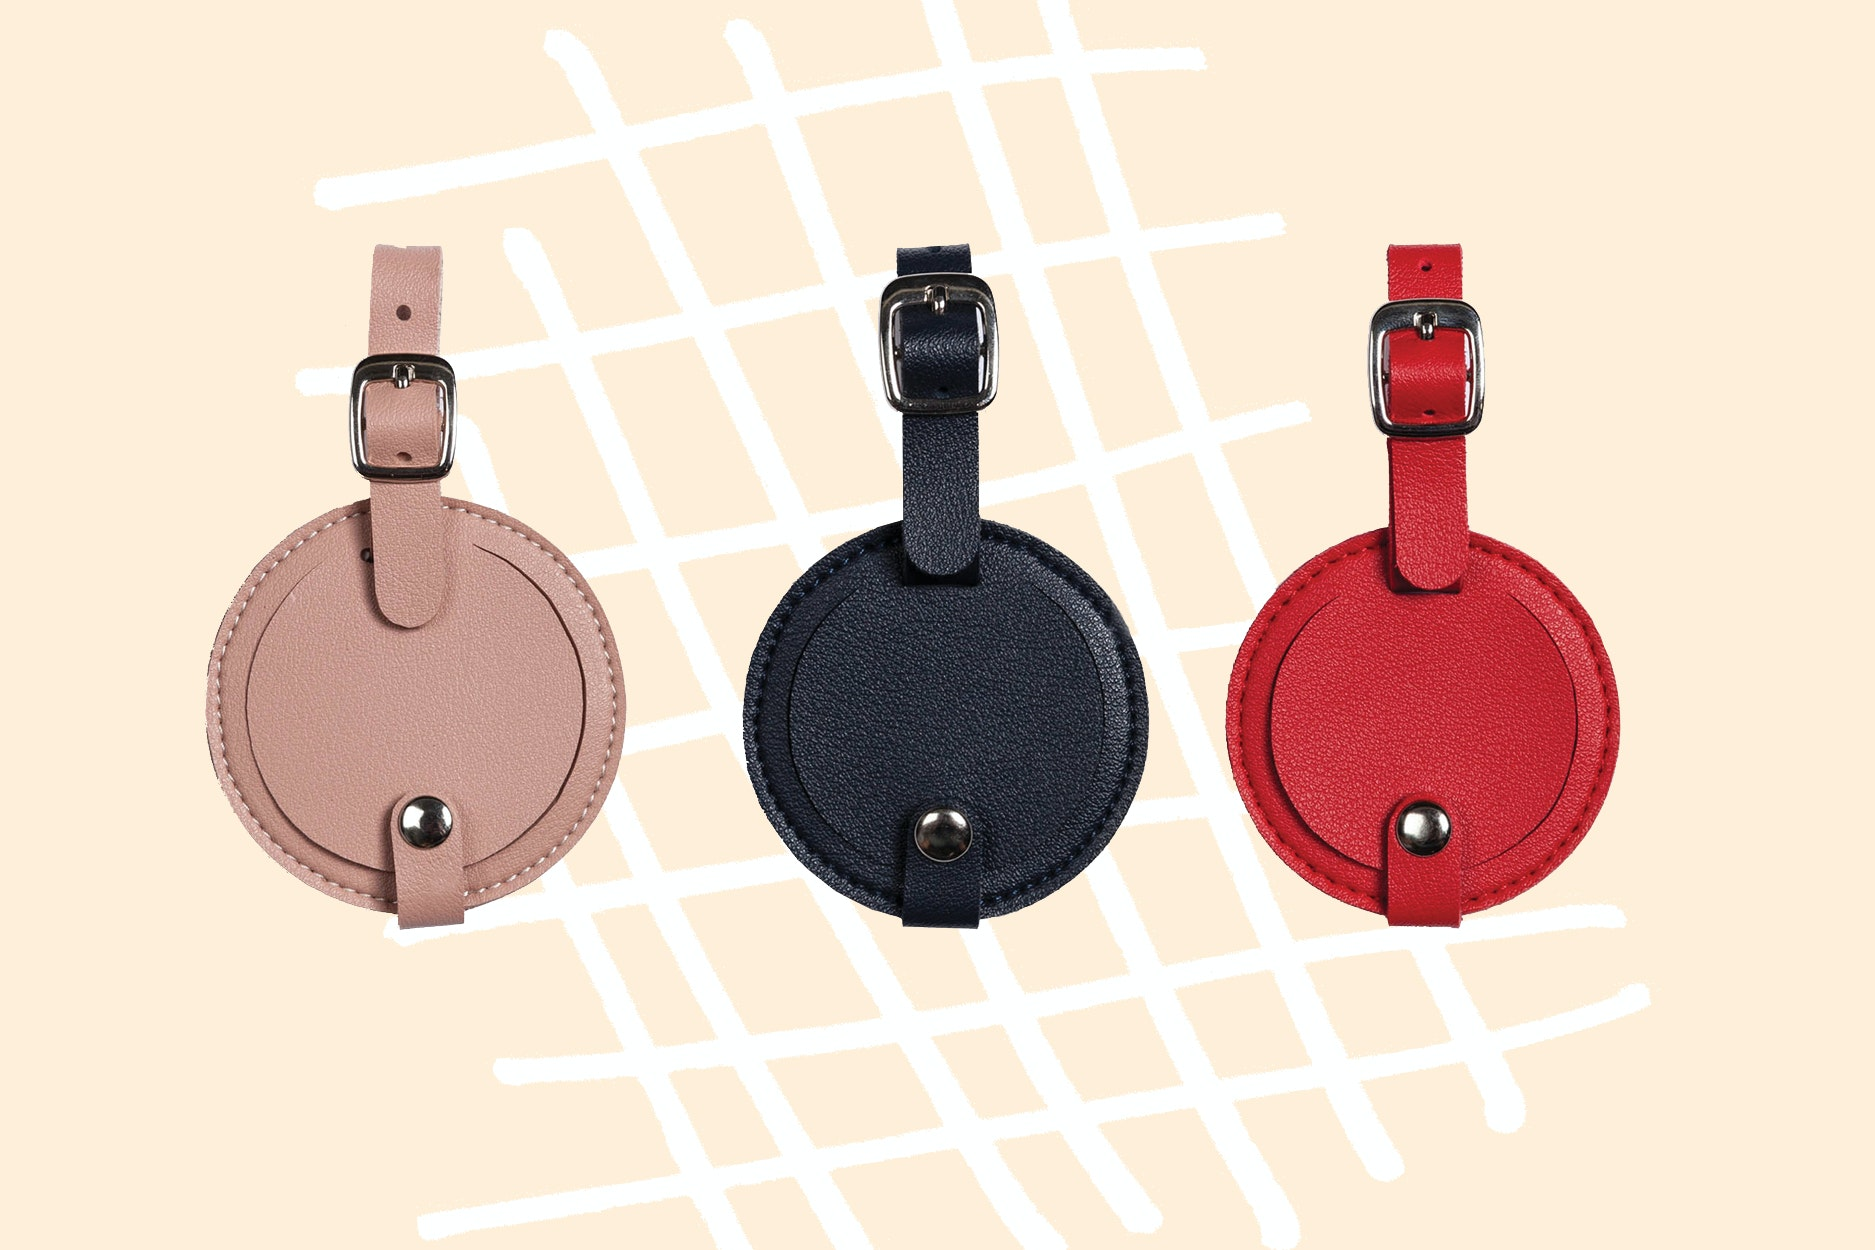 Round luggage tags come in a handy size and multiple hues.